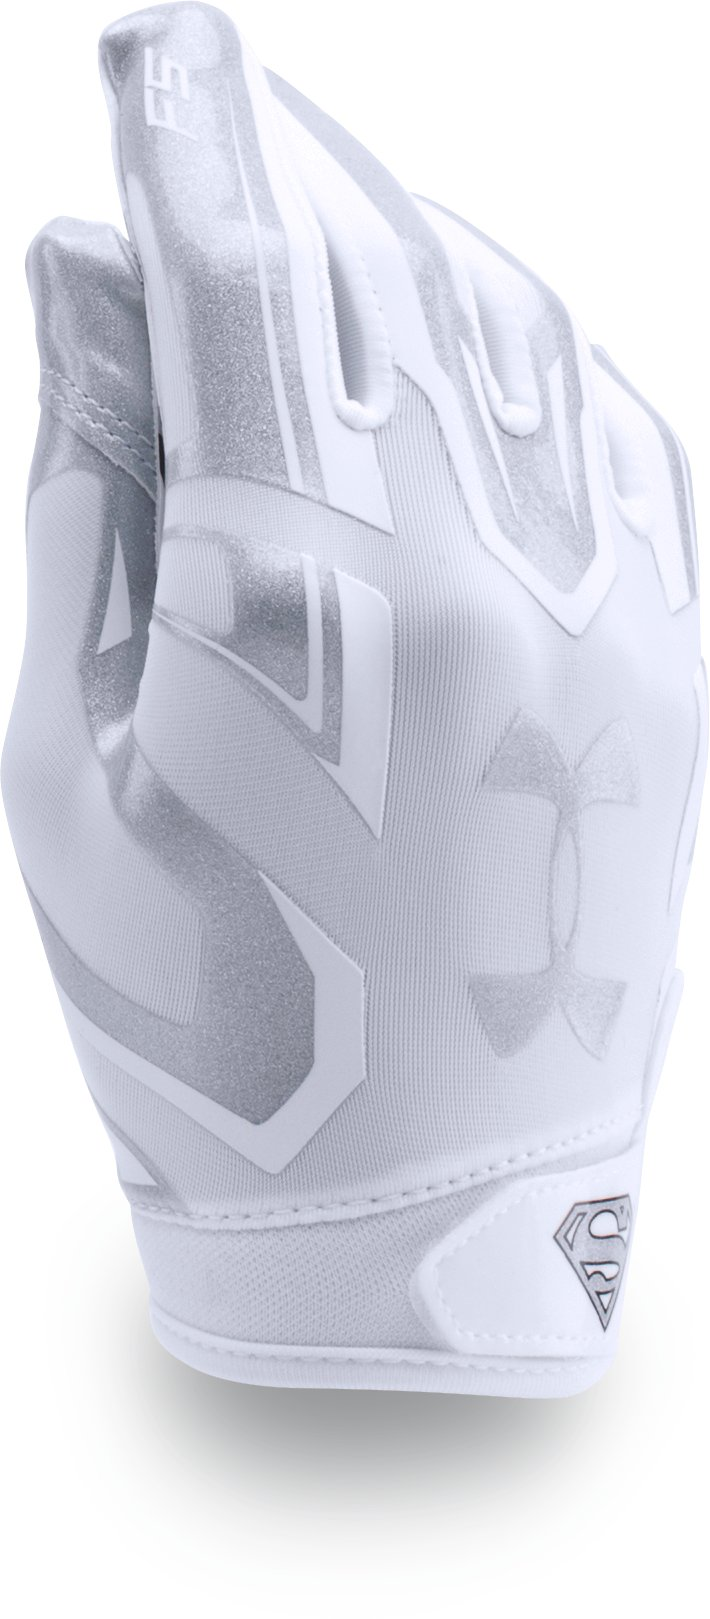 Boys' Under Armour® Alter Ego Superman F5 Football Gloves, White,